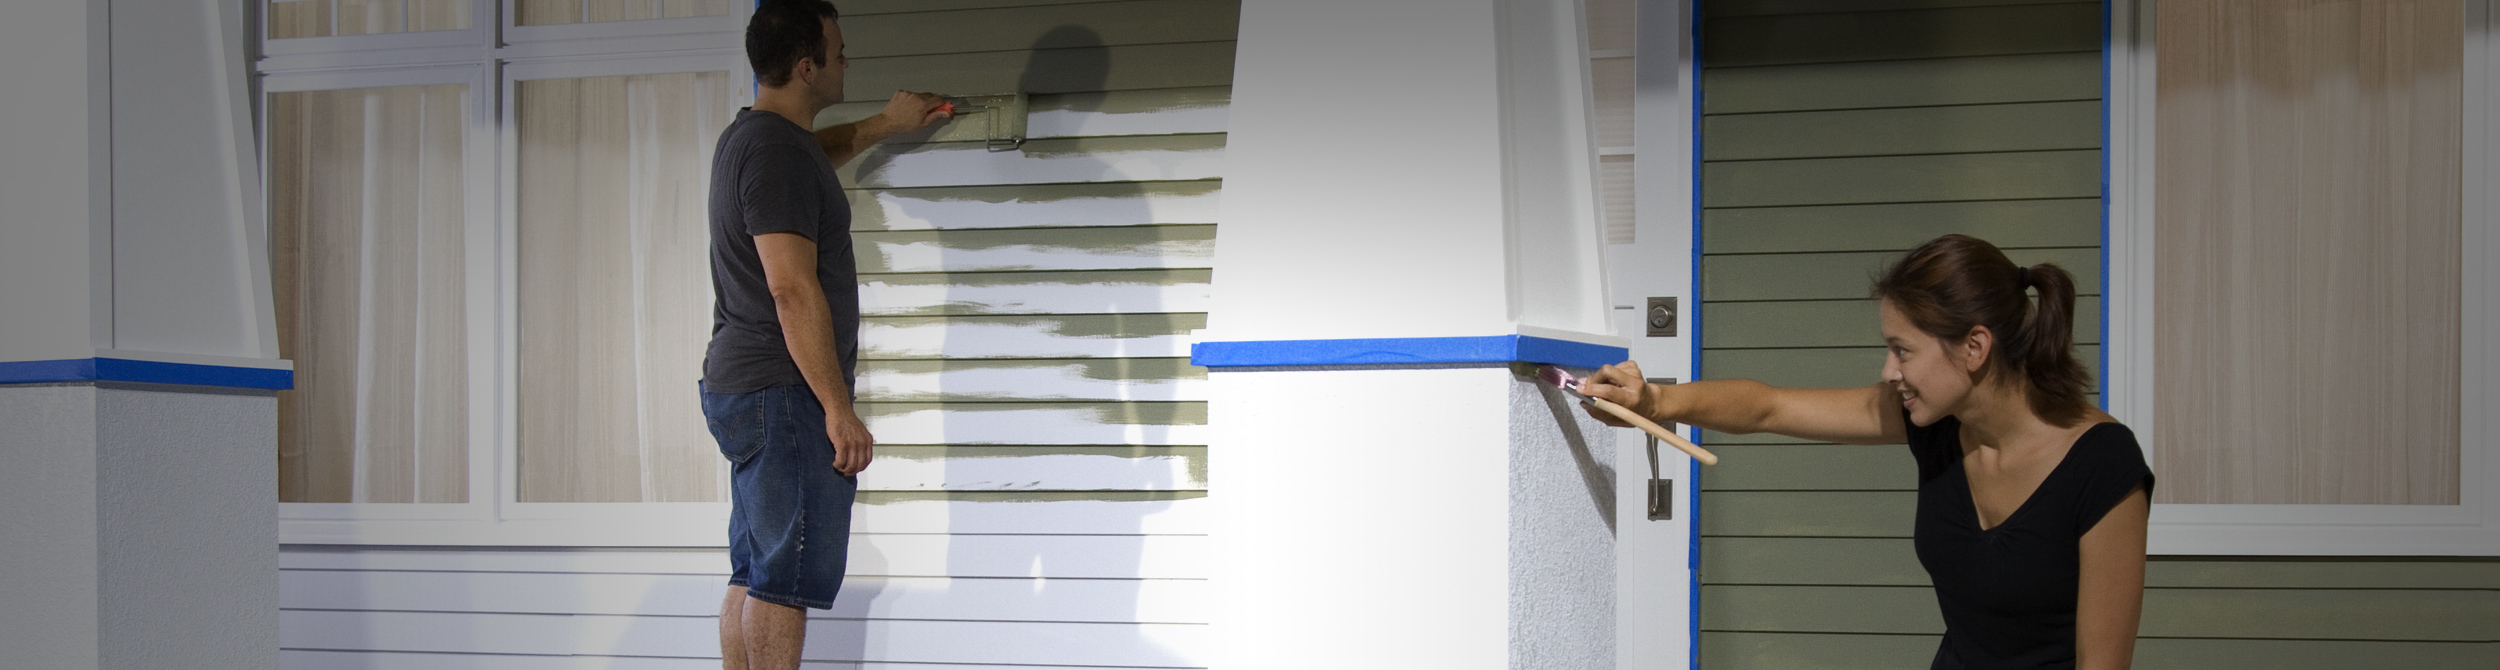 Man and woman painting house exterior.